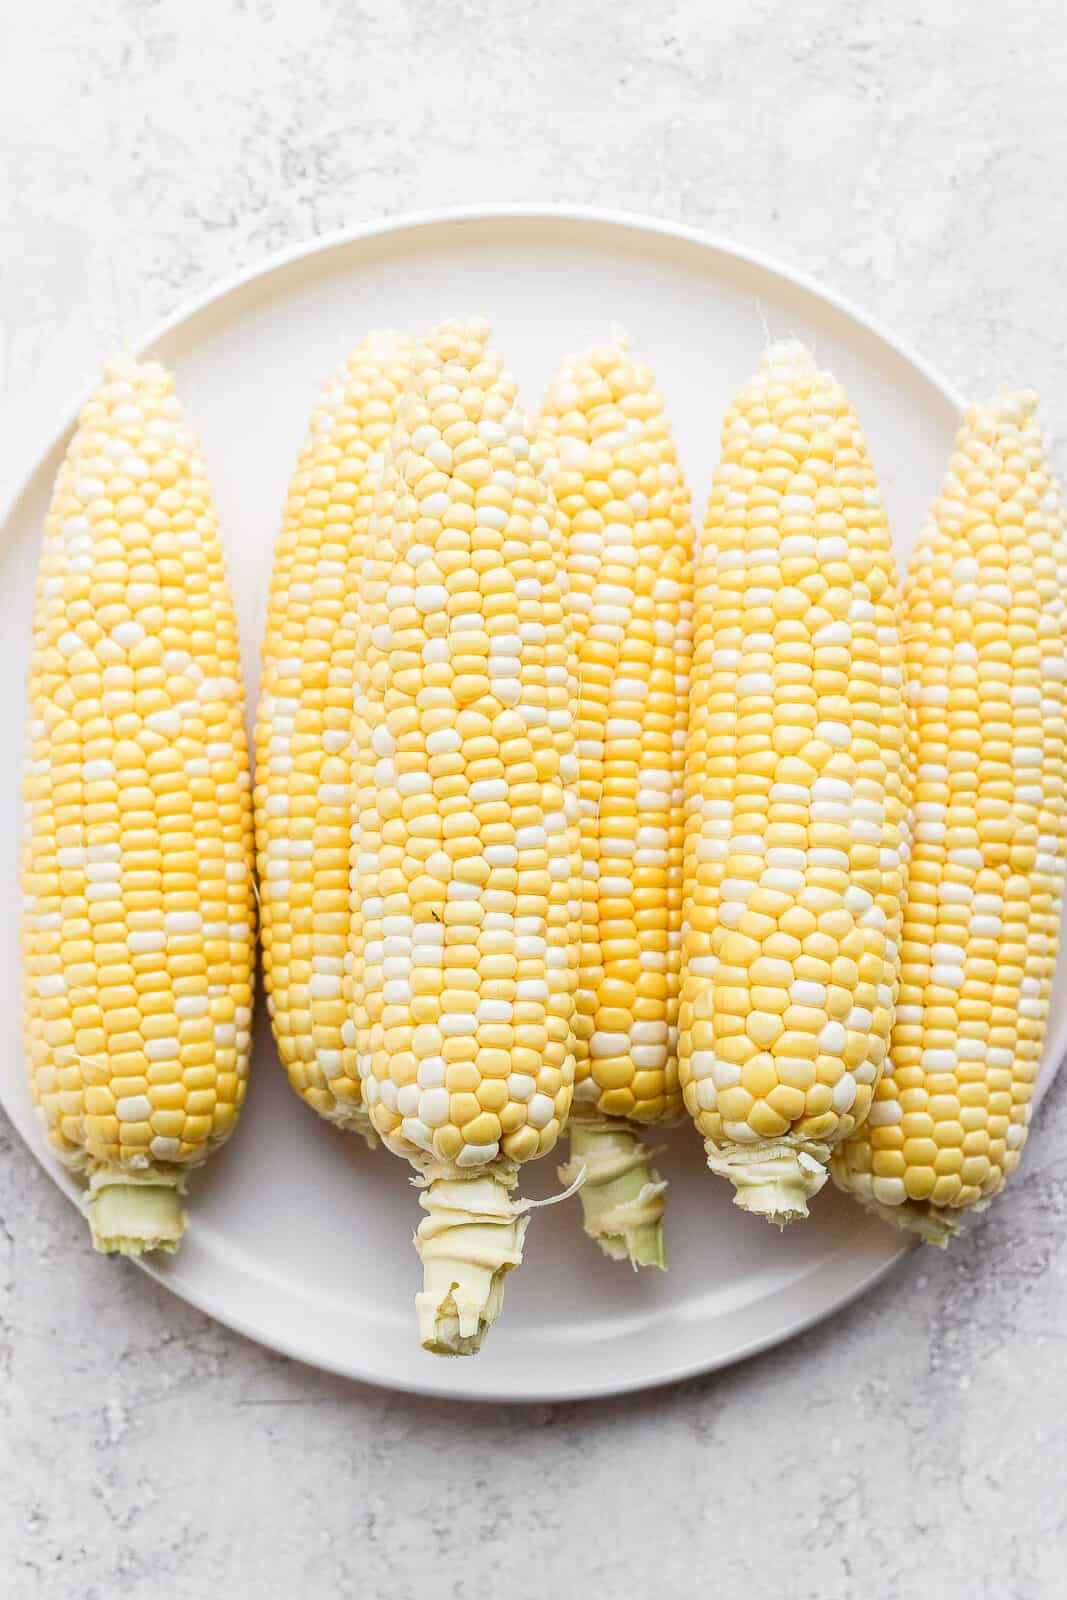 Six pieces of sweet corn on a plate.